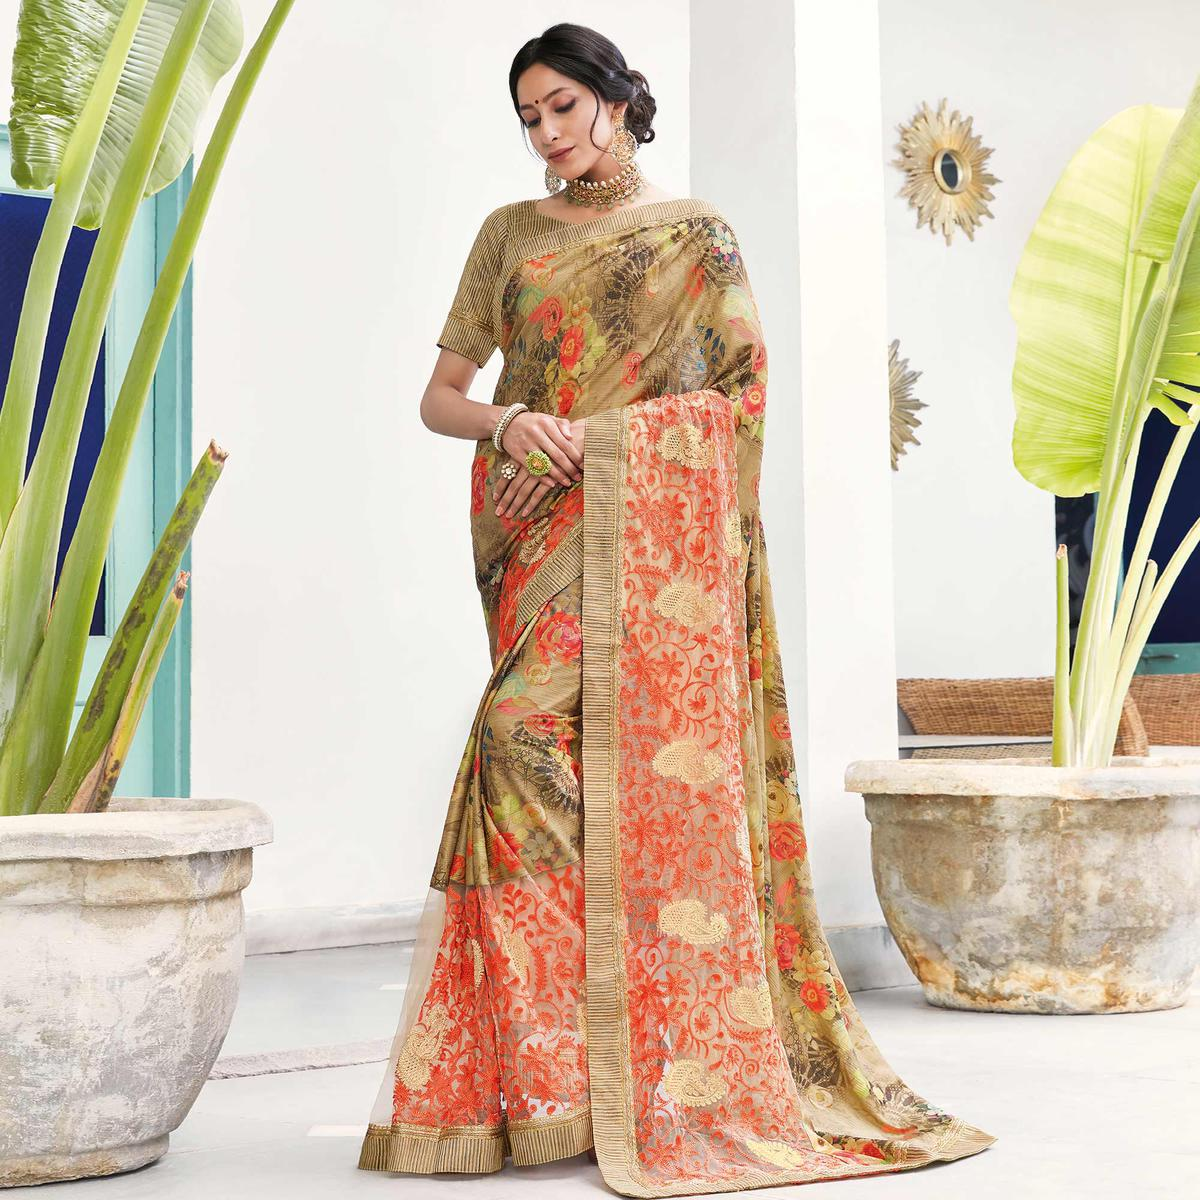 Blooming Beige Colored Partywear Floral Digital Print With Embroidered Border Silk Saree